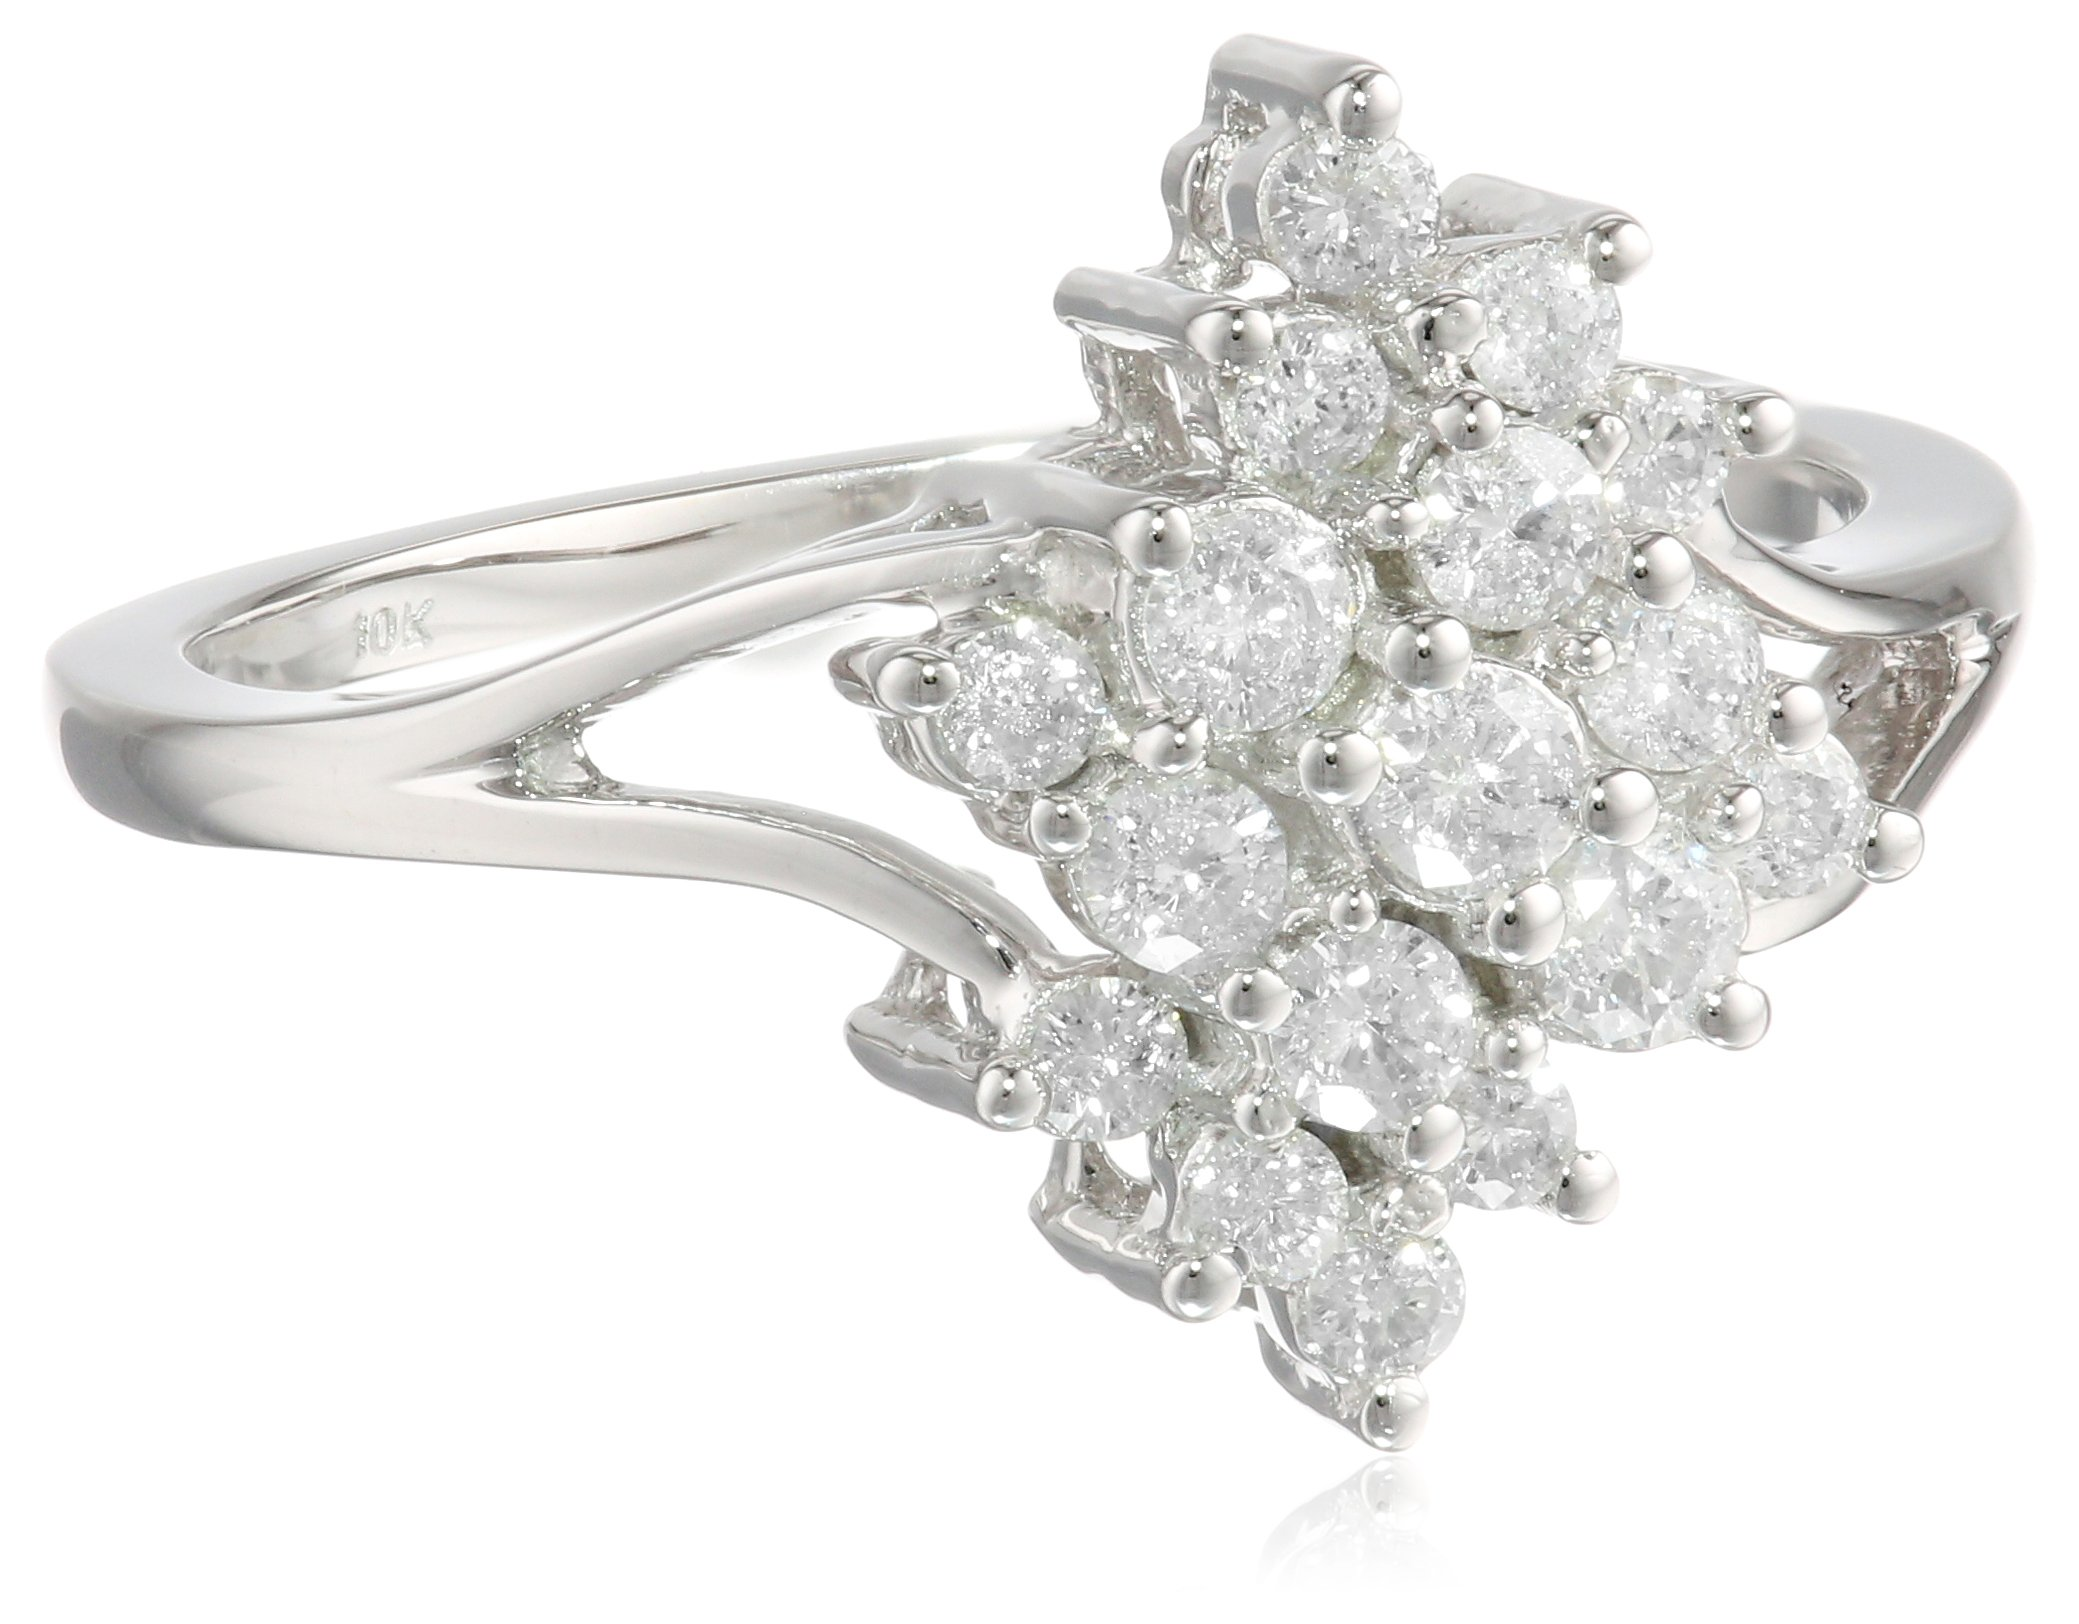 10k White Gold Diamond Ring (0.52 cttw , H-I Color , I3 Clarity) Size 7